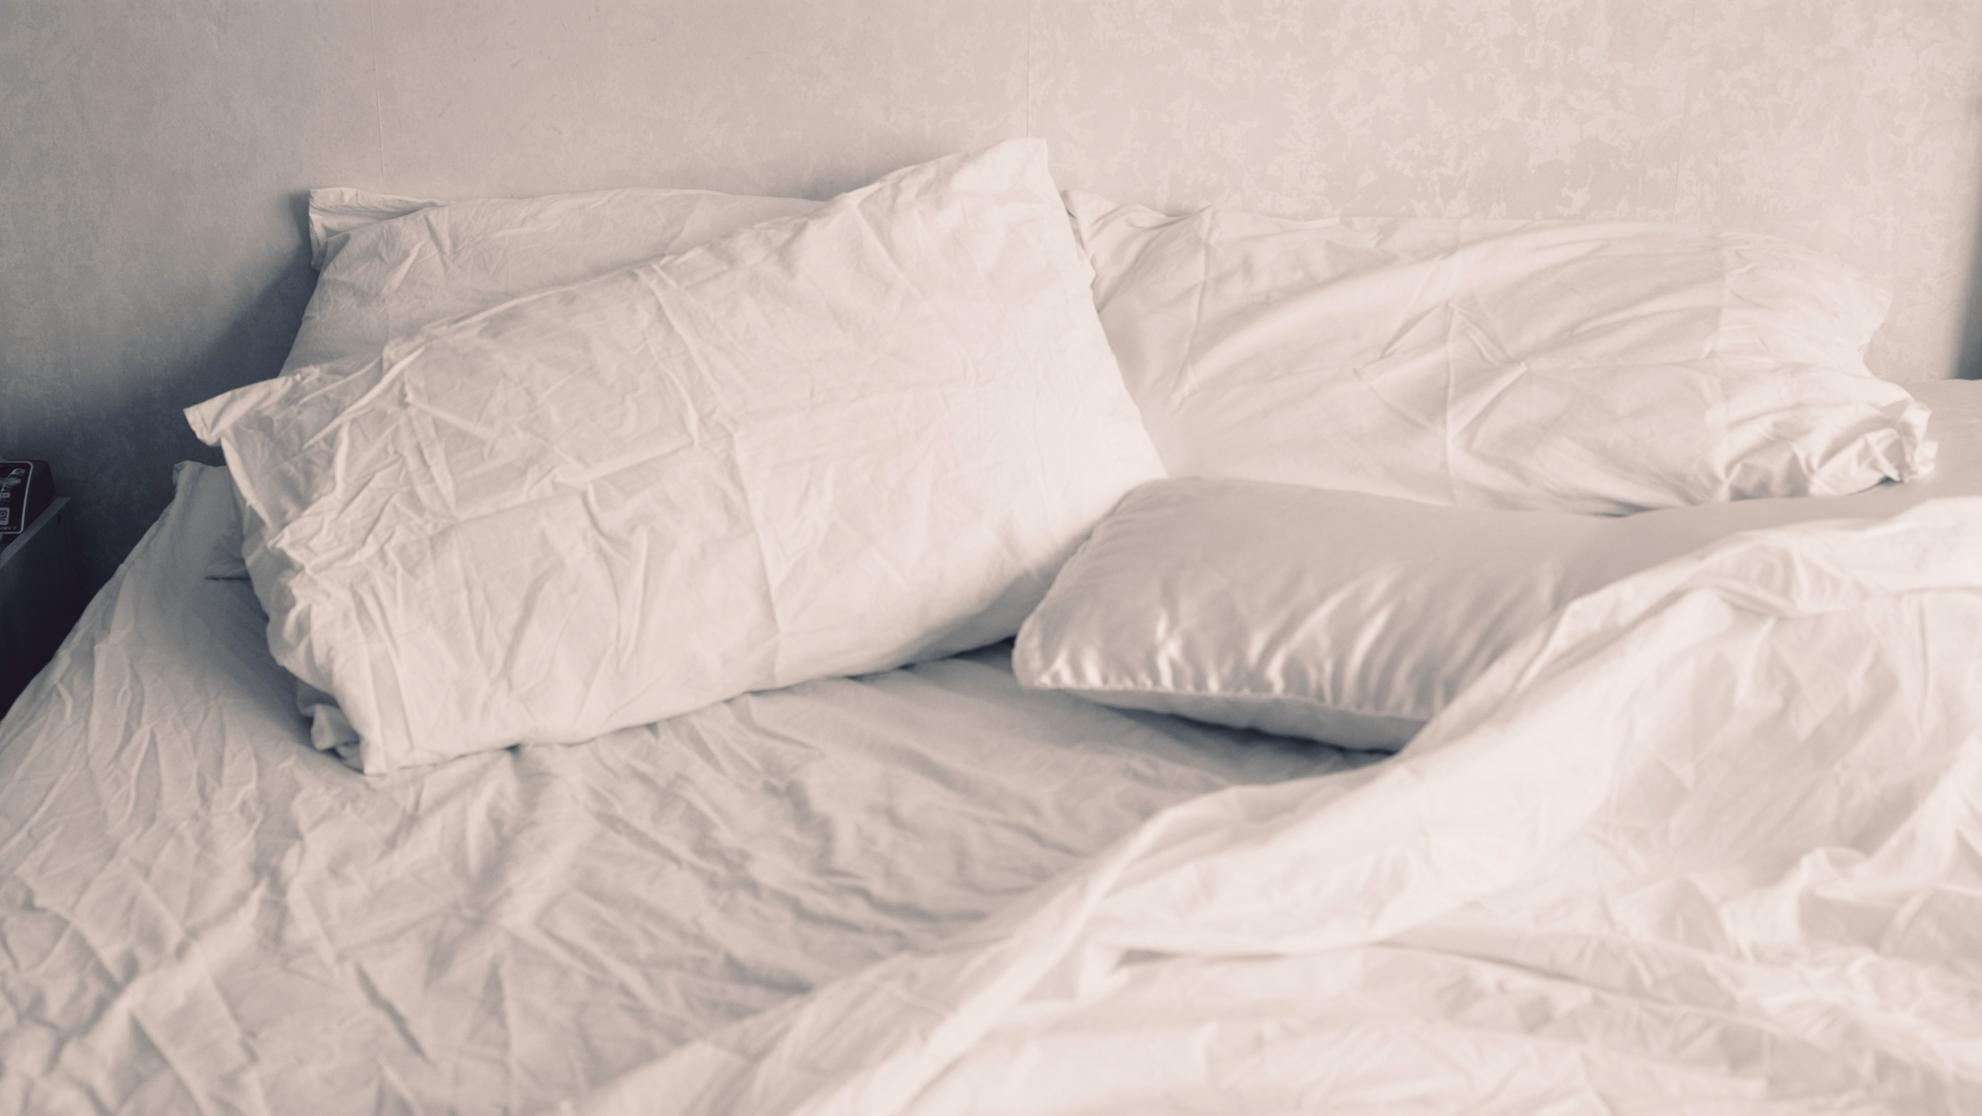 Why Do I Feel Sleepy Until the Moment I Get in Bed?